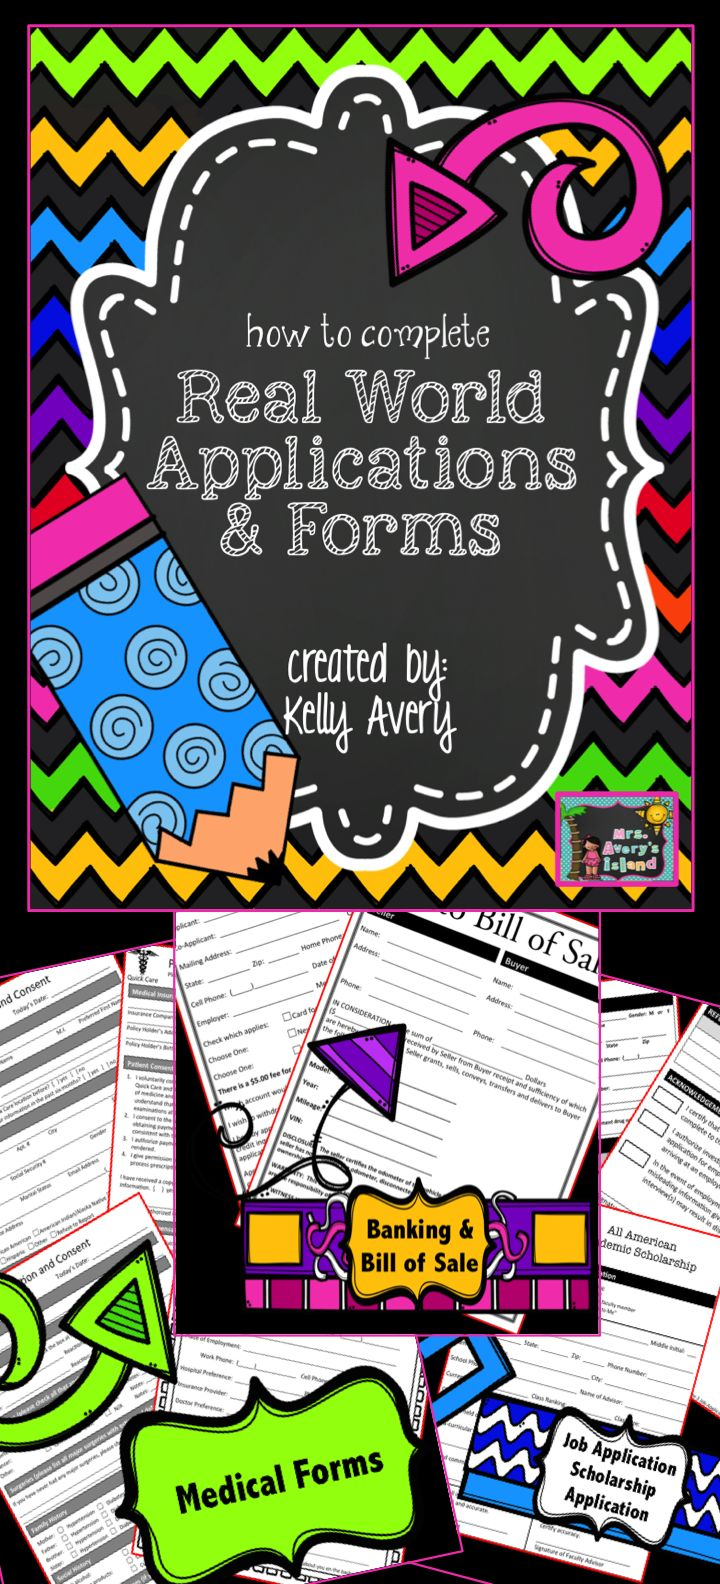 Job Applications and Forms for Kids - Are your students learning how to complete personal information on a real world job application, college scholarship, medical form, etc.?  This packet provides teachers a variety of applications and forms for students to learn tips when completing applications.  Click here to discover a variety of real world forms to teach your students this important life skill.